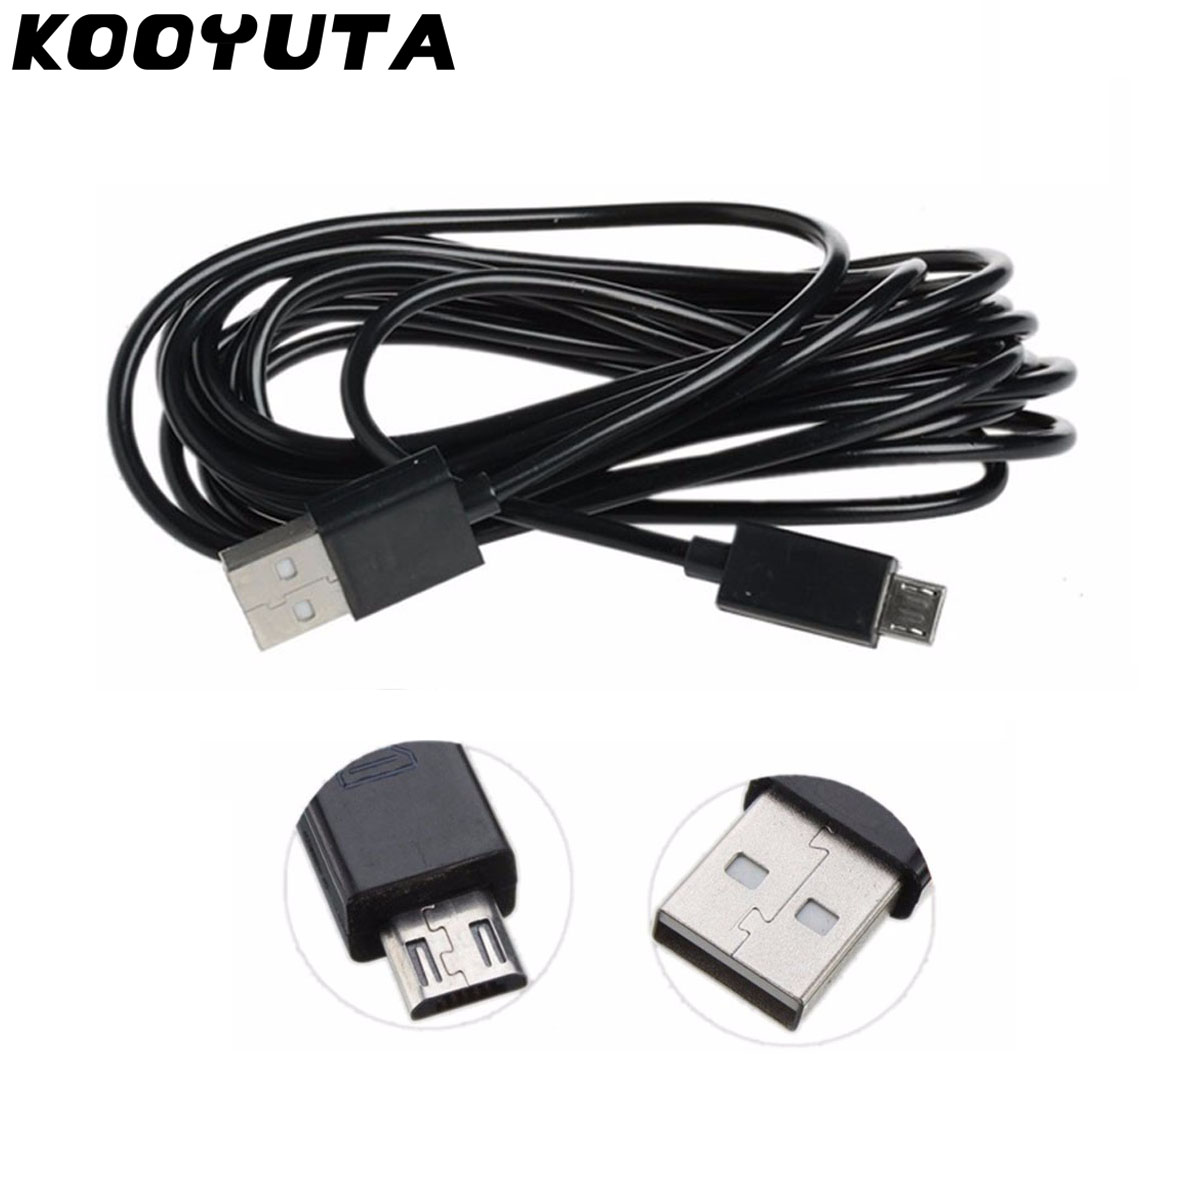 KOOYUTA 3M Extra Long Micro USB Charger <font><b>Cable</b></font> Play Charging Cord Line for Sony Playstation <font><b>PS4</b></font> 4 Xbox One Wireless <font><b>Controller</b></font> image